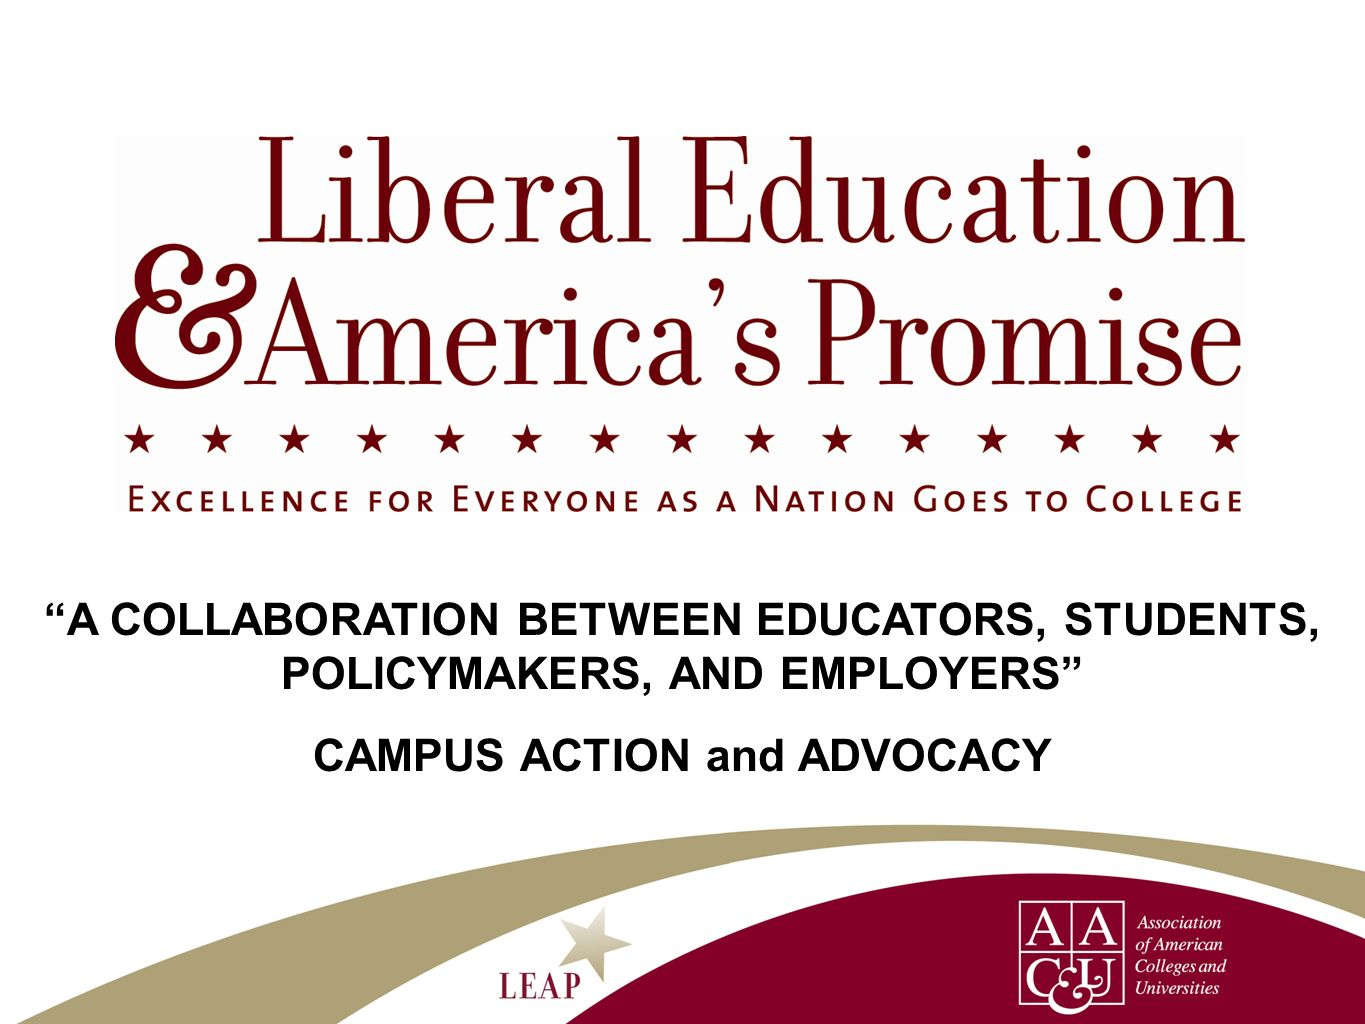 LEAP Areas of Work Public Advocacy/Communicationleadership through National Leadership Council, Presidents Trust, and work in selected LEAP states to make the case for the value of a 21 st century engaged and public-spirited liberal education and importance of essential learning outcomes Campus Actiontechnical assistance and networking to support campus efforts to increase all students achievement of essential learning outcomes and to communicate more effectively about liberal education Authentic Evidencereports on public opinion, high-impact practices, assessment approaches that deepen student learning and national reports on student achievement